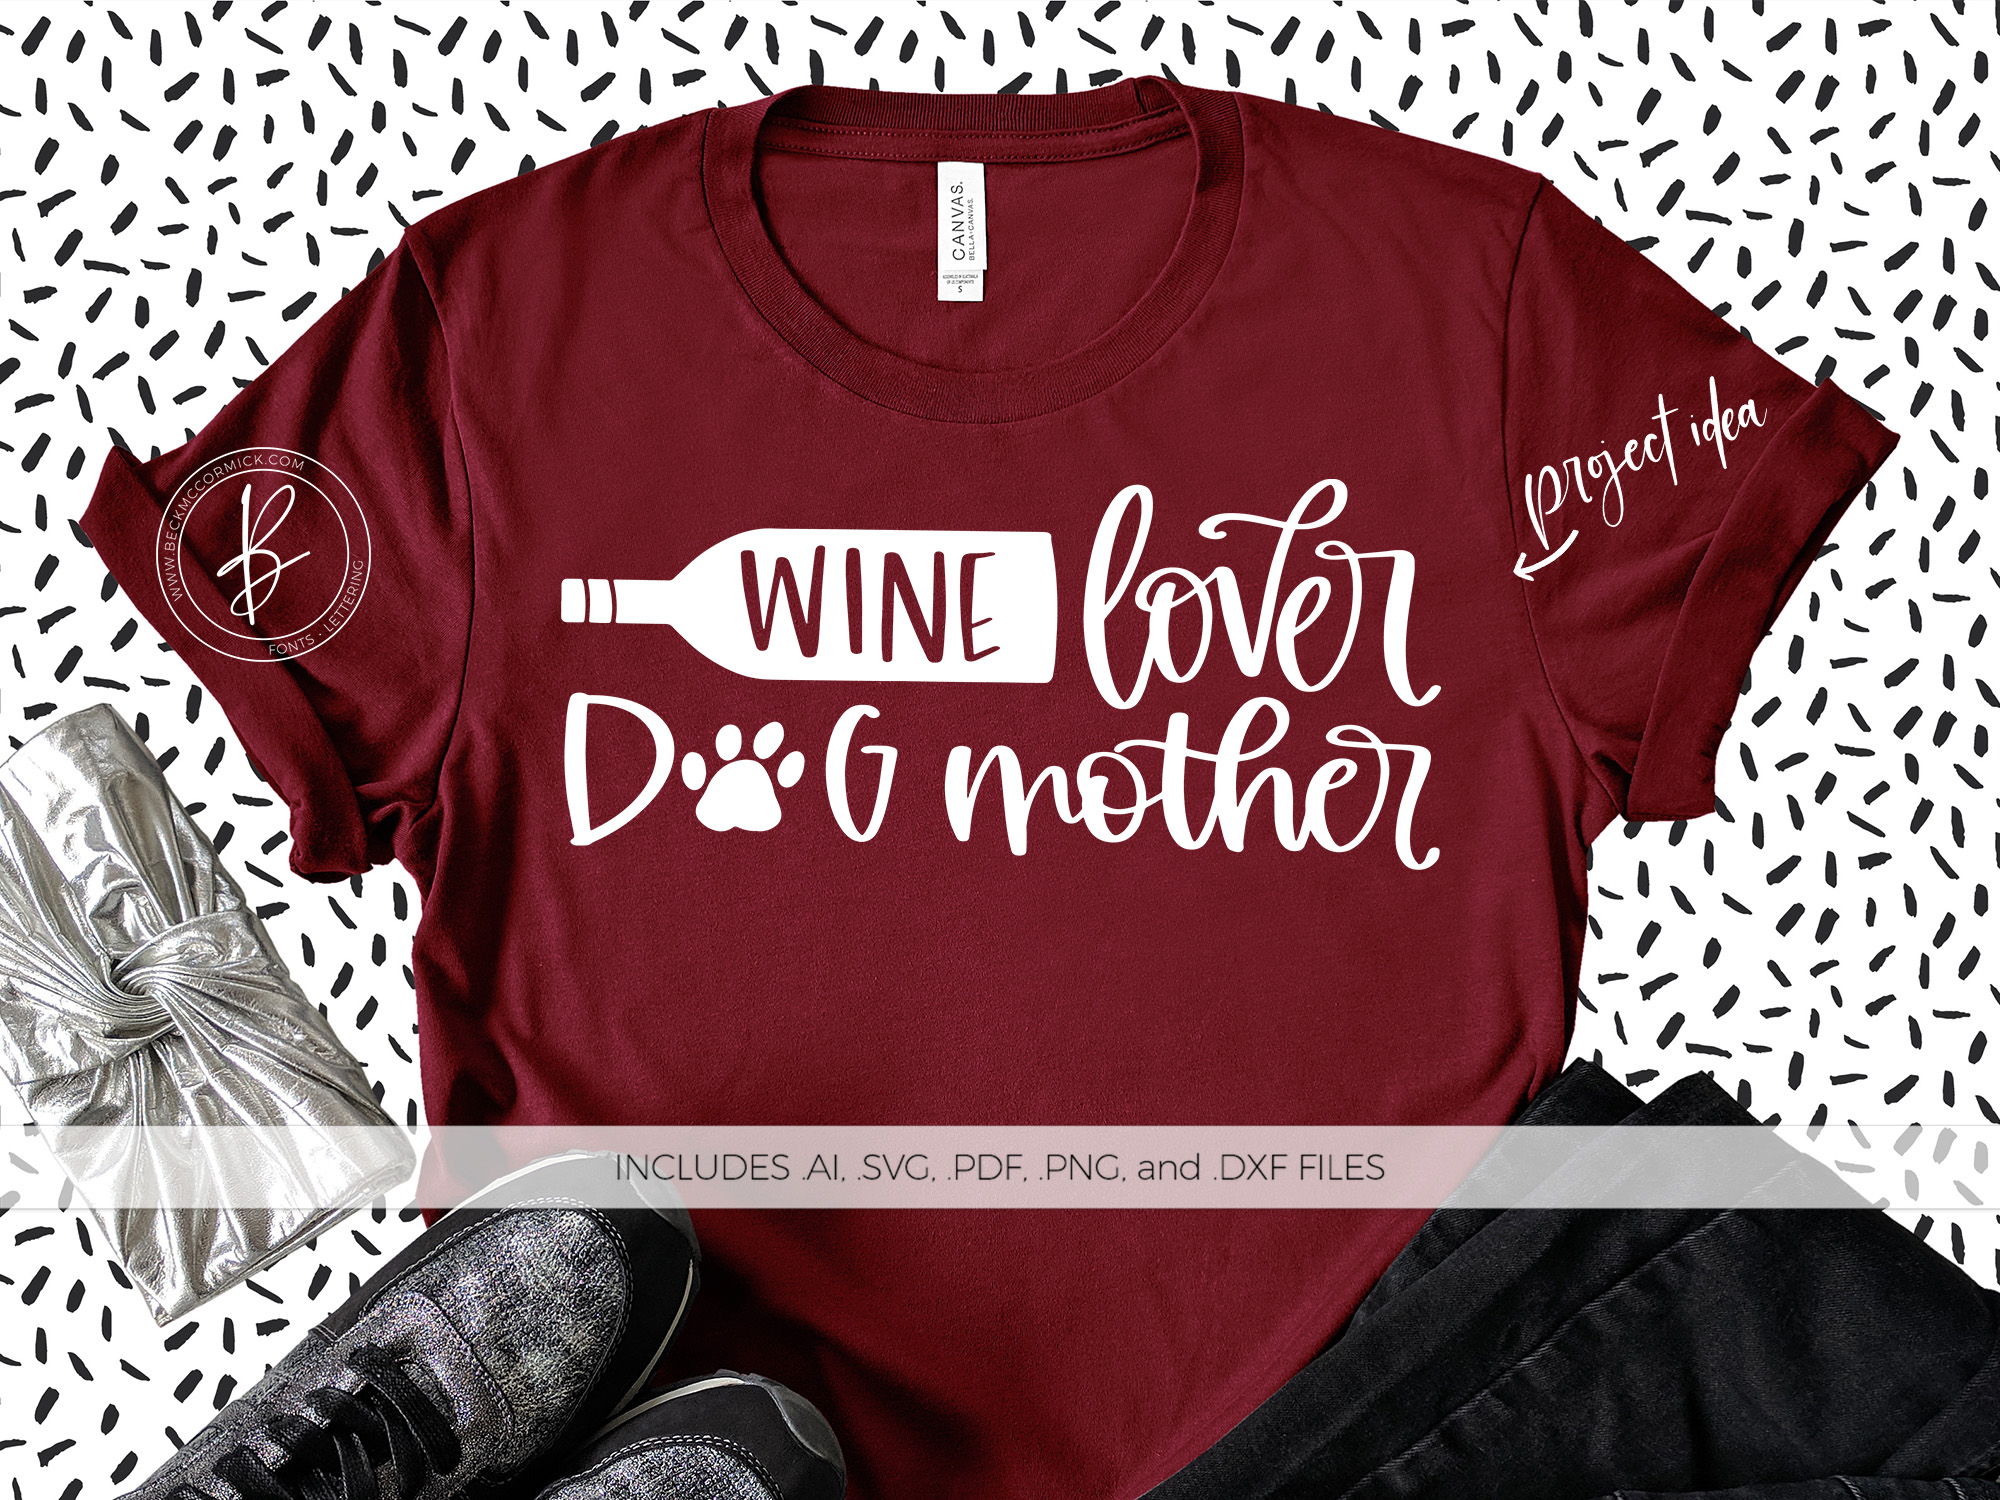 Download Free Wine Lover Dog Mother Graphic By Beckmccormick Creative Fabrica for Cricut Explore, Silhouette and other cutting machines.